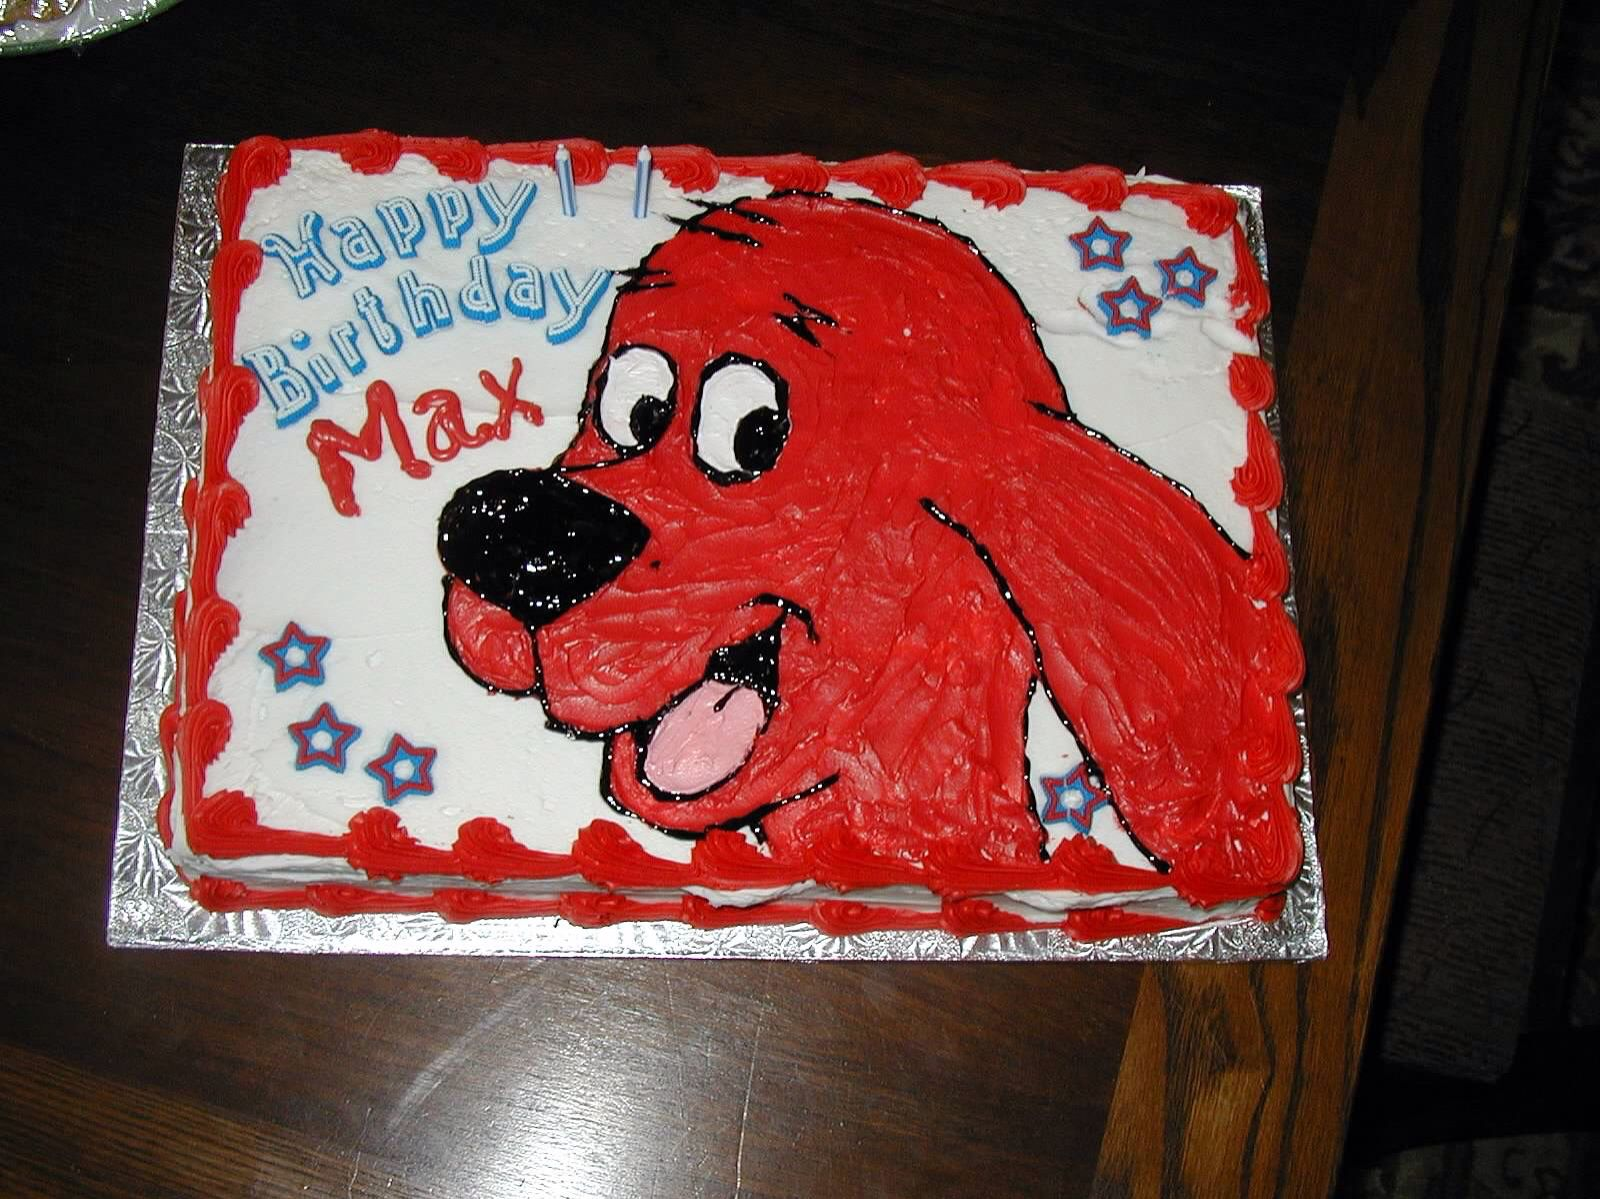 Clifford the Big Red Dog on a big cake! I used craft brushes to ...